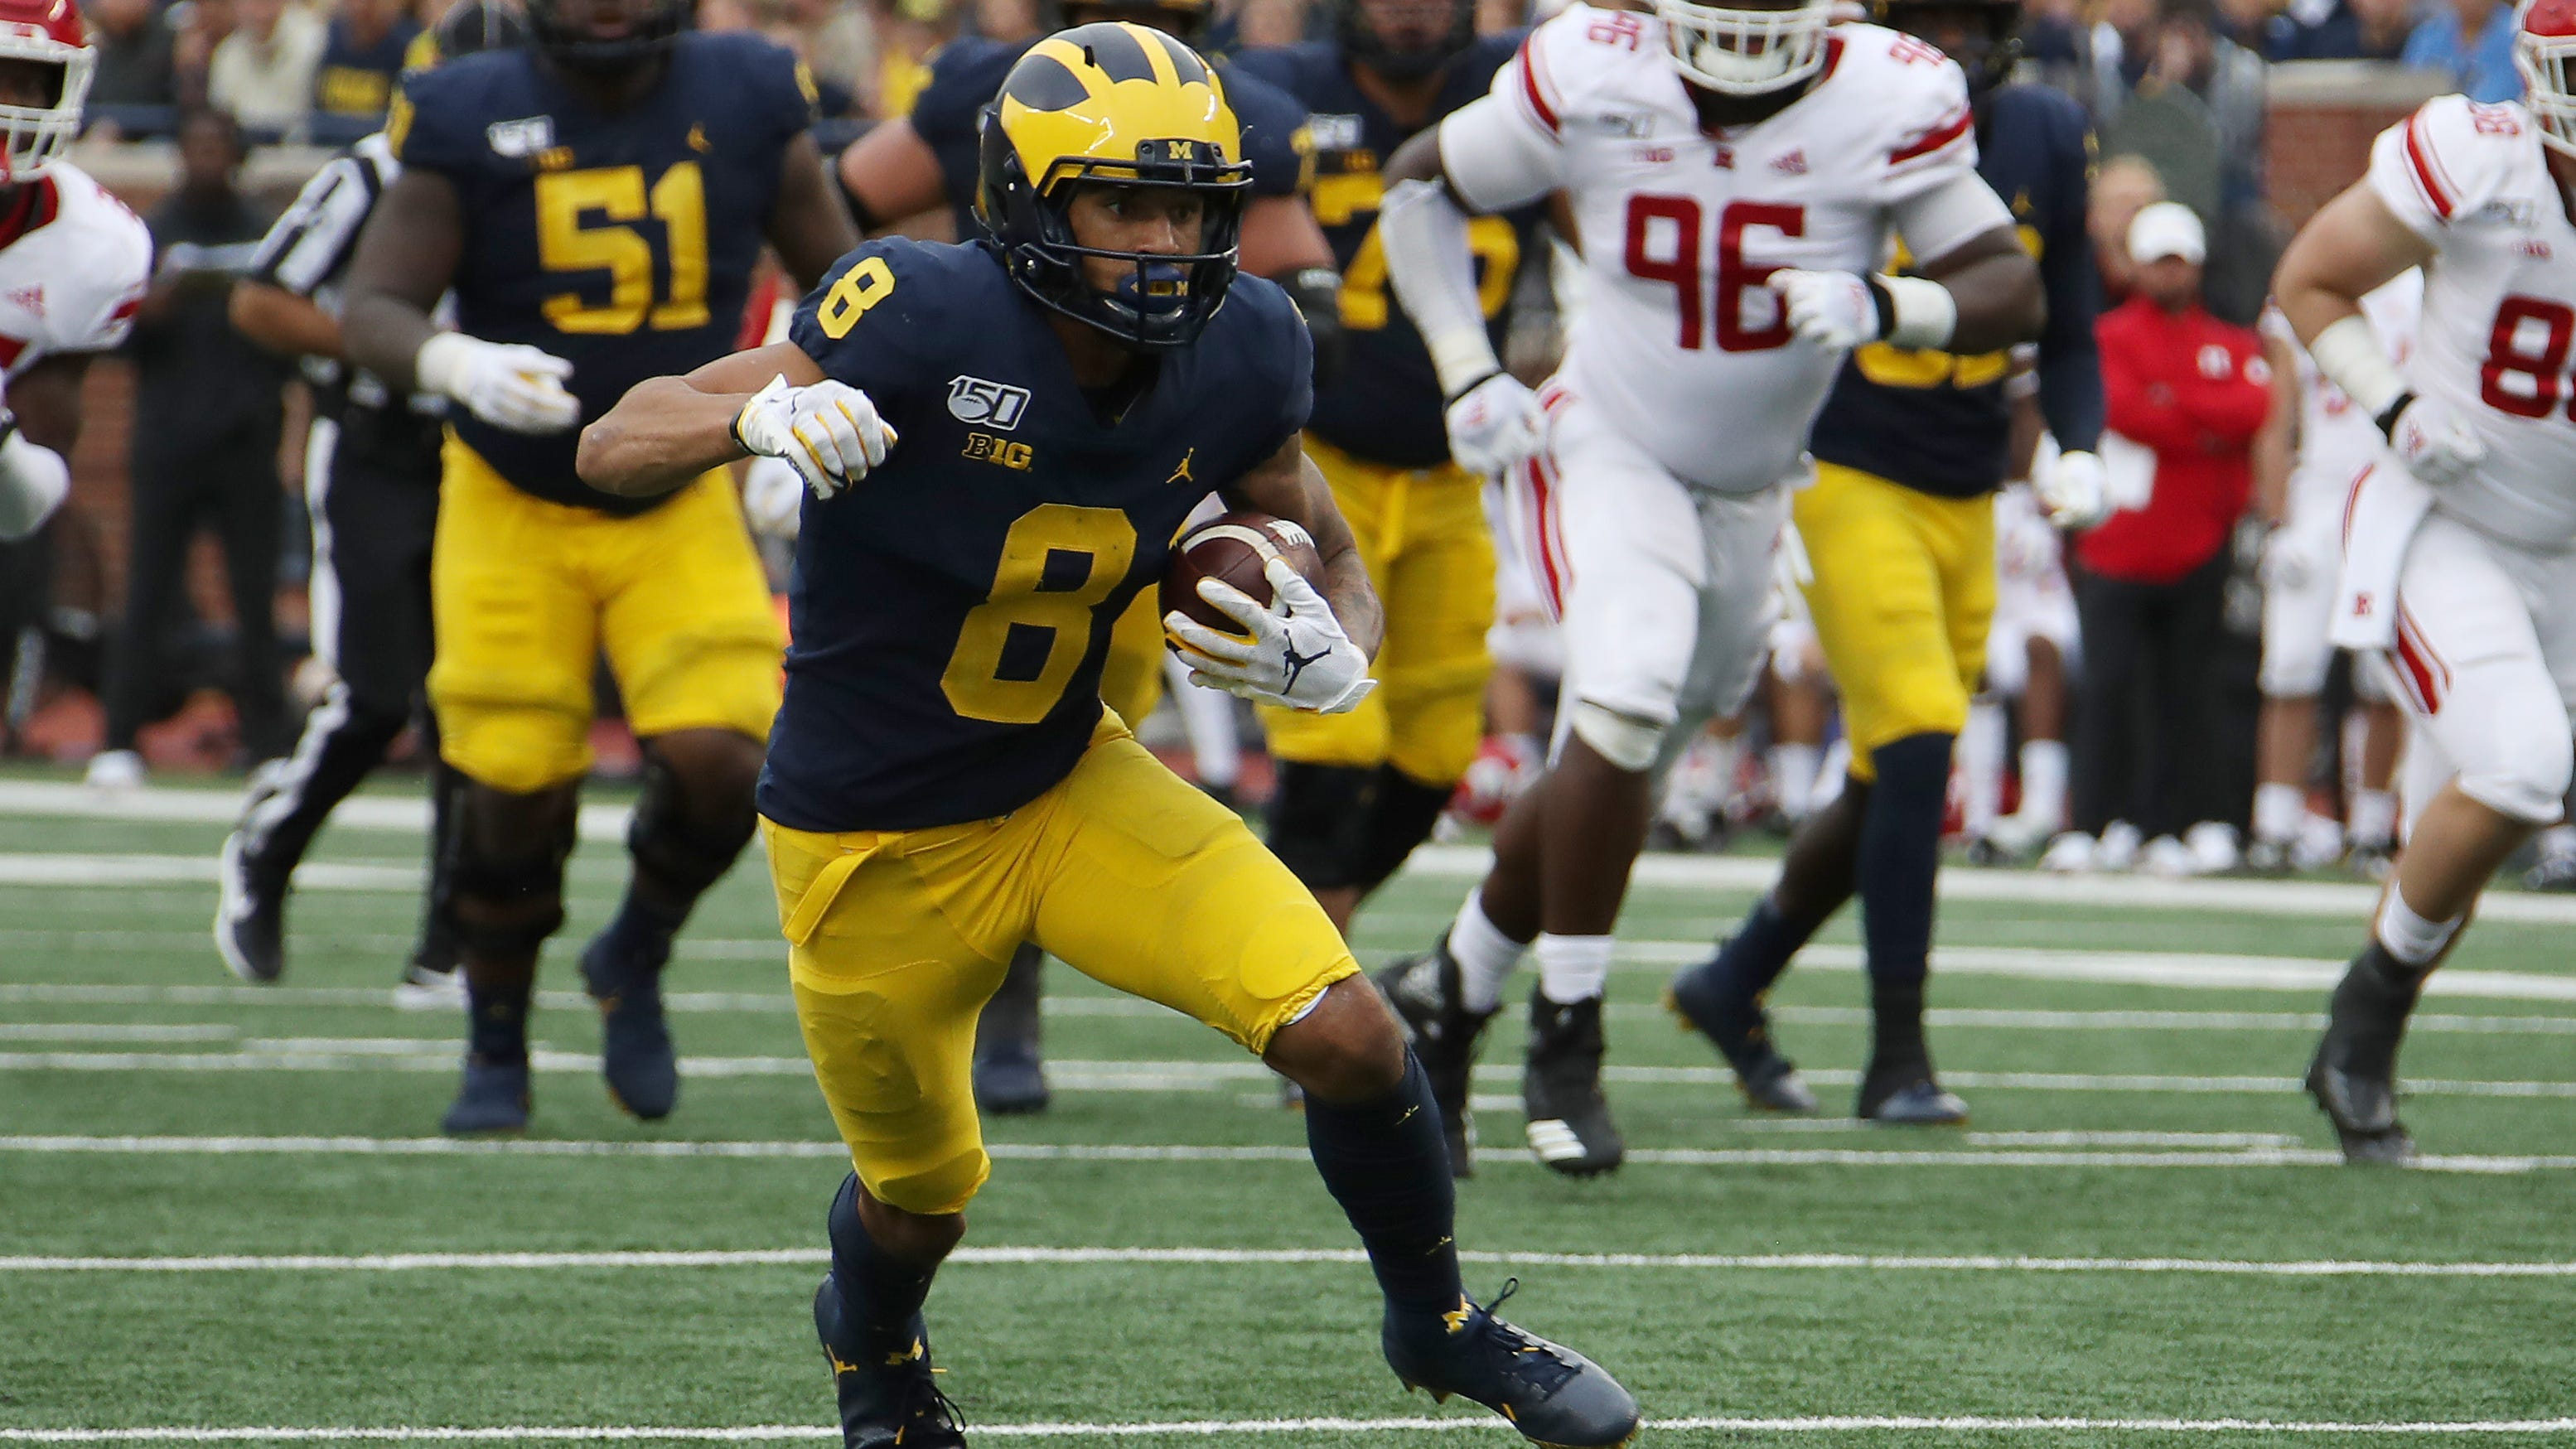 Michigan loses top offensive weapon Ronnie Bell to apparent knee injury